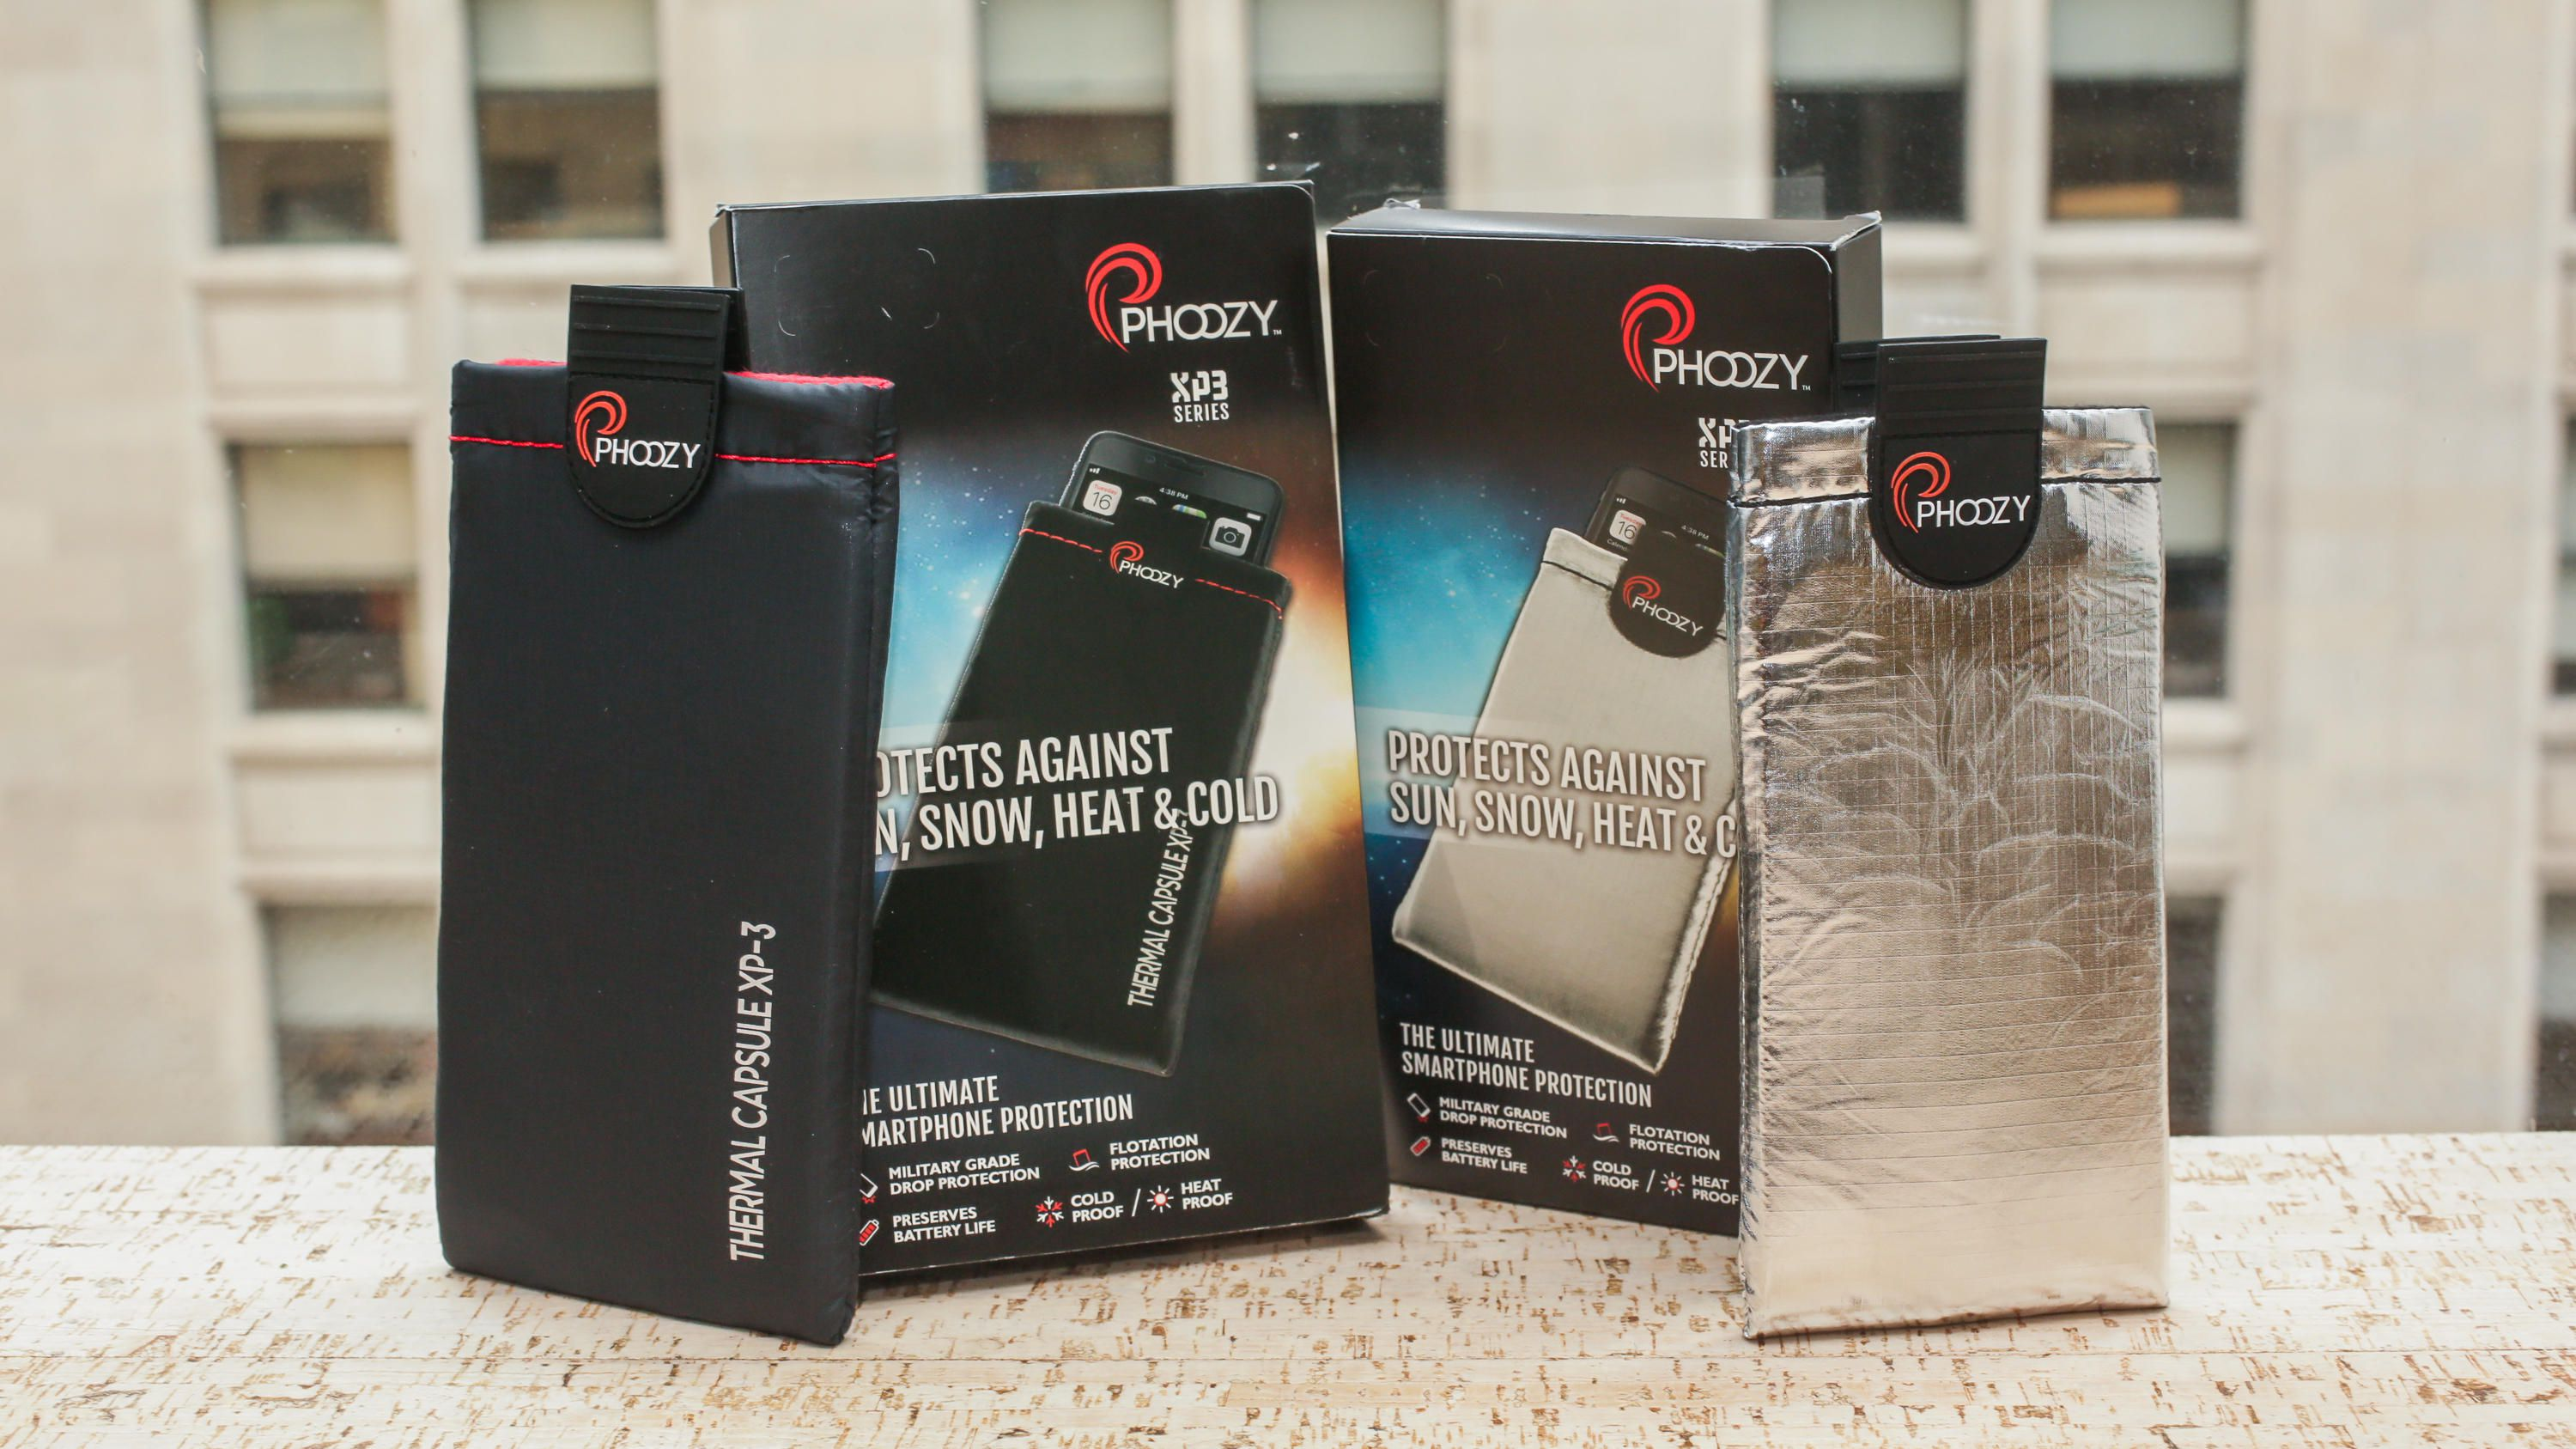 Phoozy's spacesuit case for iPhones and Android devices ...